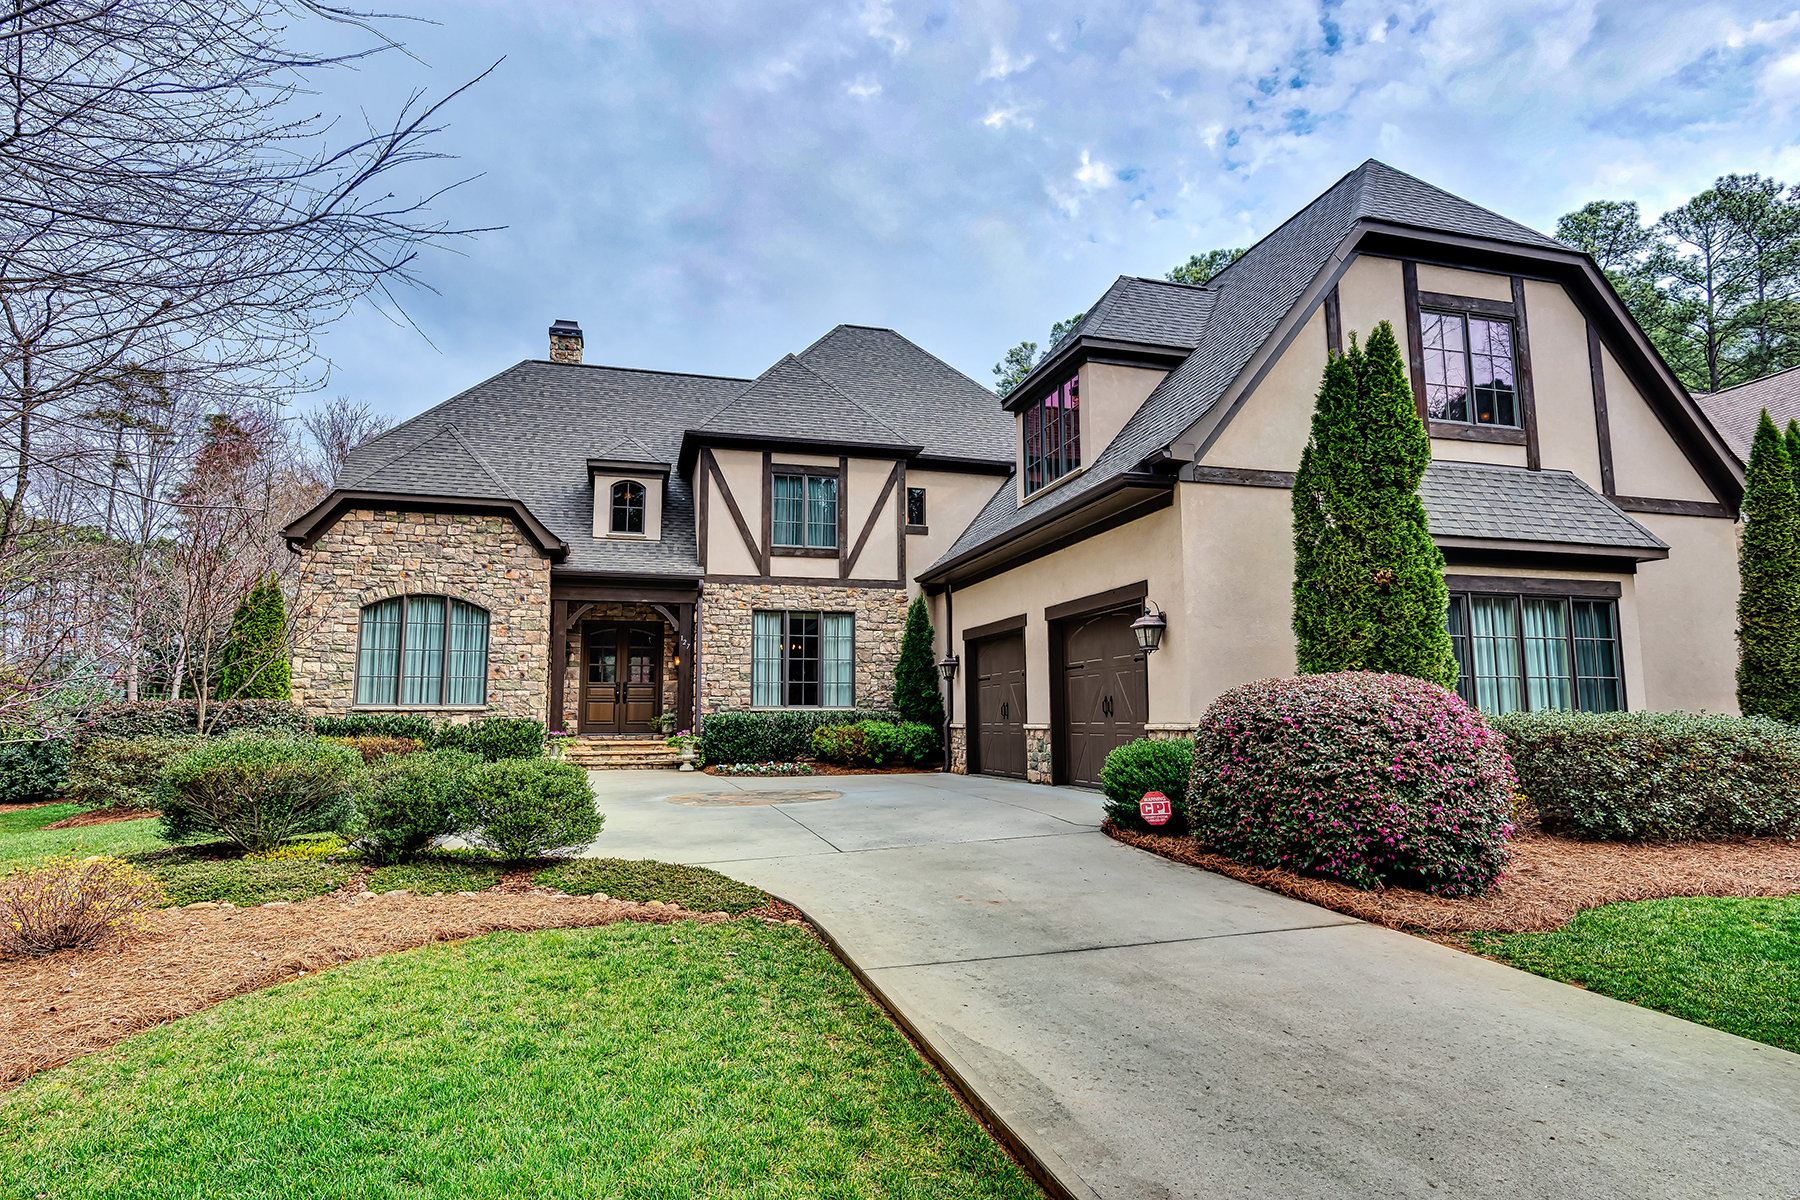 Single Family Home for Sale at MALIBU POINTE 127 Sport Court Way, Mooresville, North Carolina 28117 United States